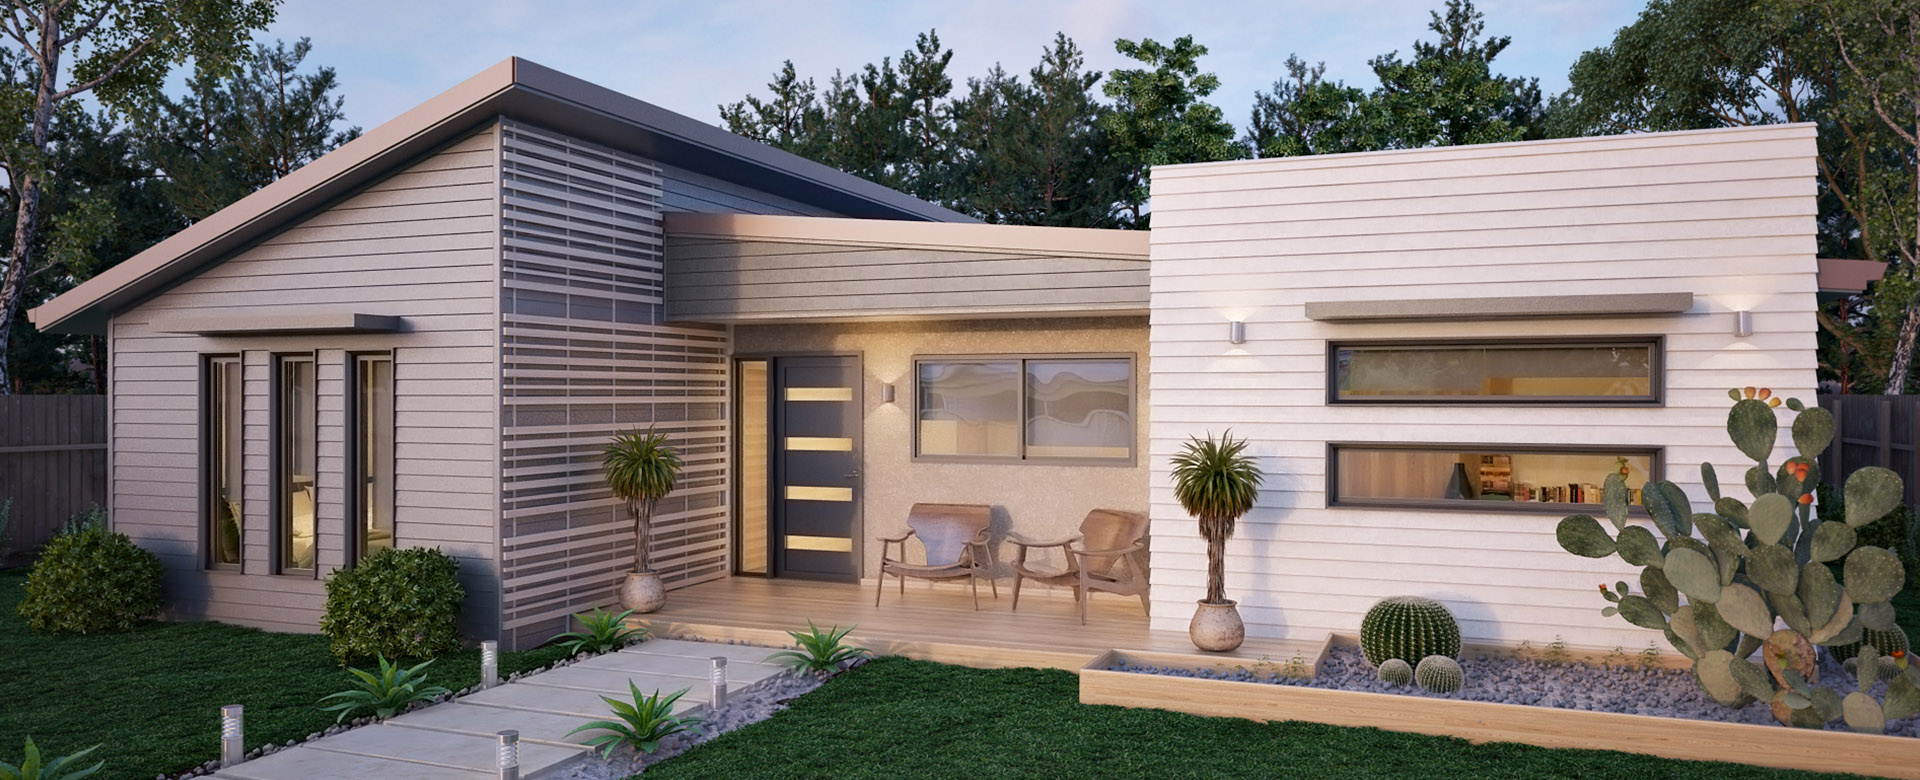 Teague modular homes wa for Home designs wa